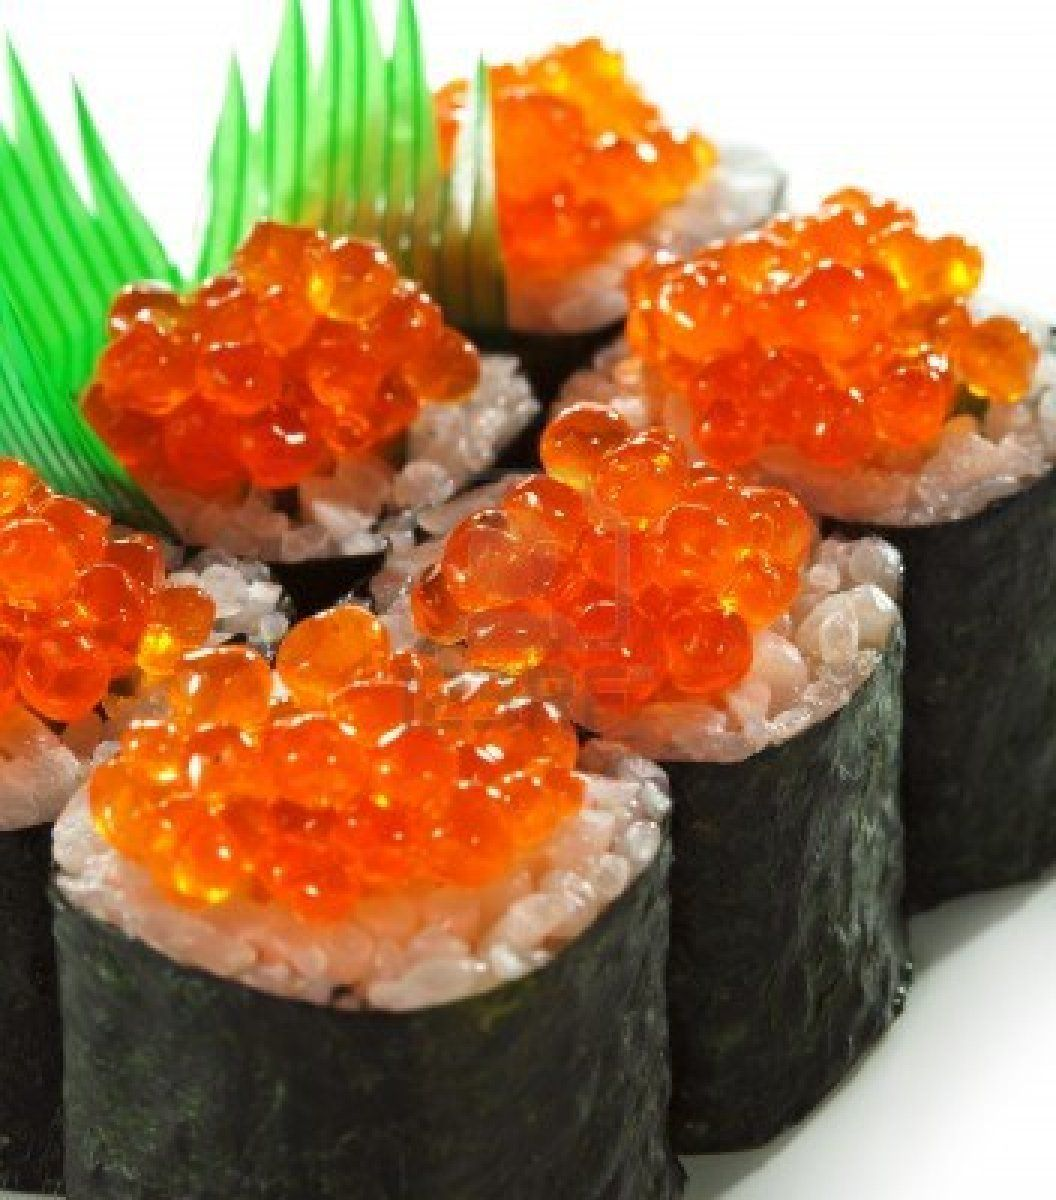 Ikura maki sushi roll with fresh salmon roe sushi for Fish eggs on sushi